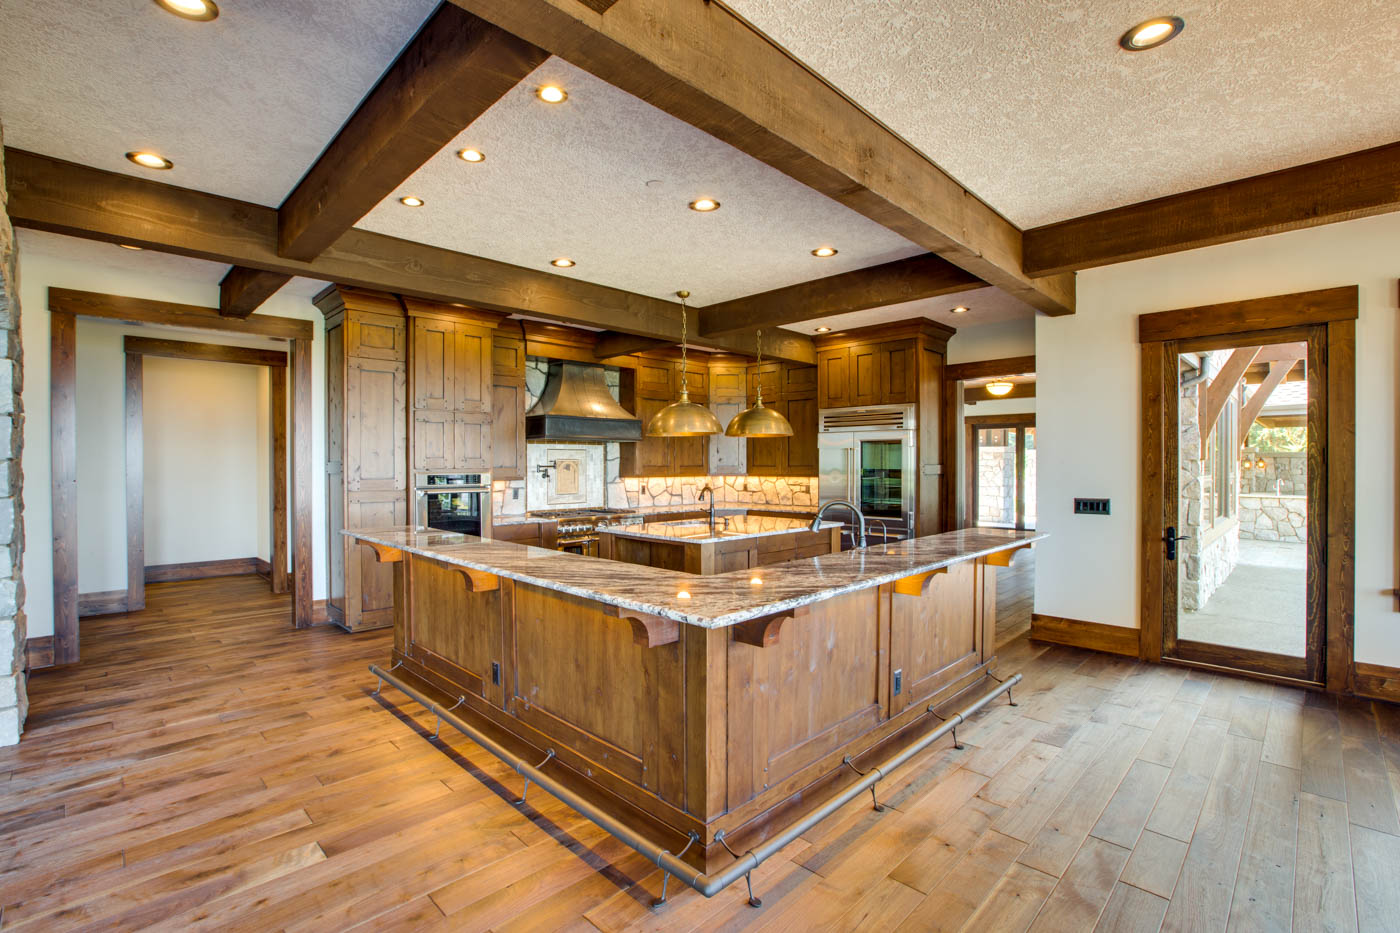 kitchen_18010-s-ramsby-rd_075_webres